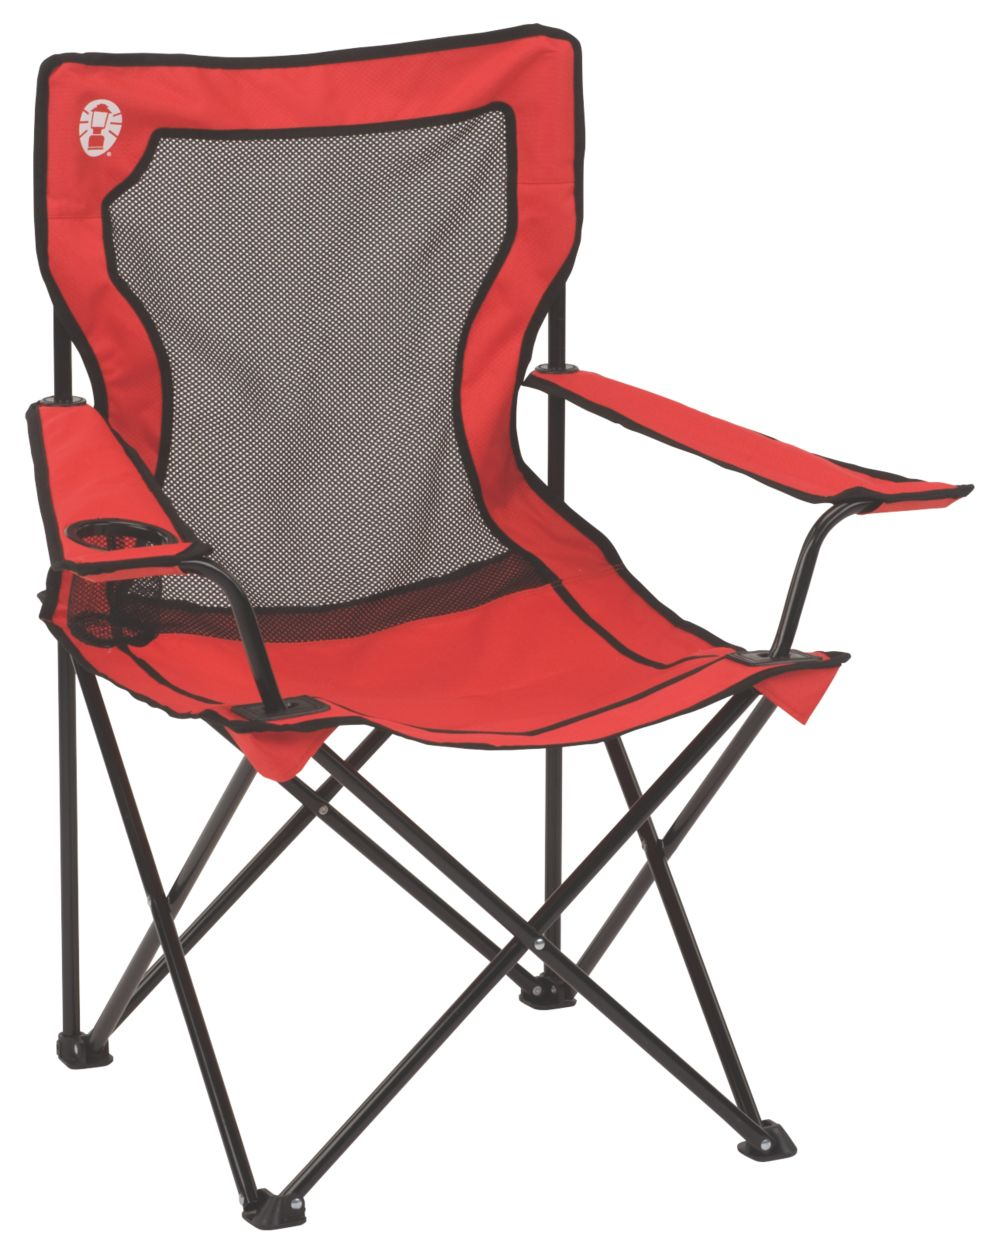 Broadband™ Mesh Quad Chair